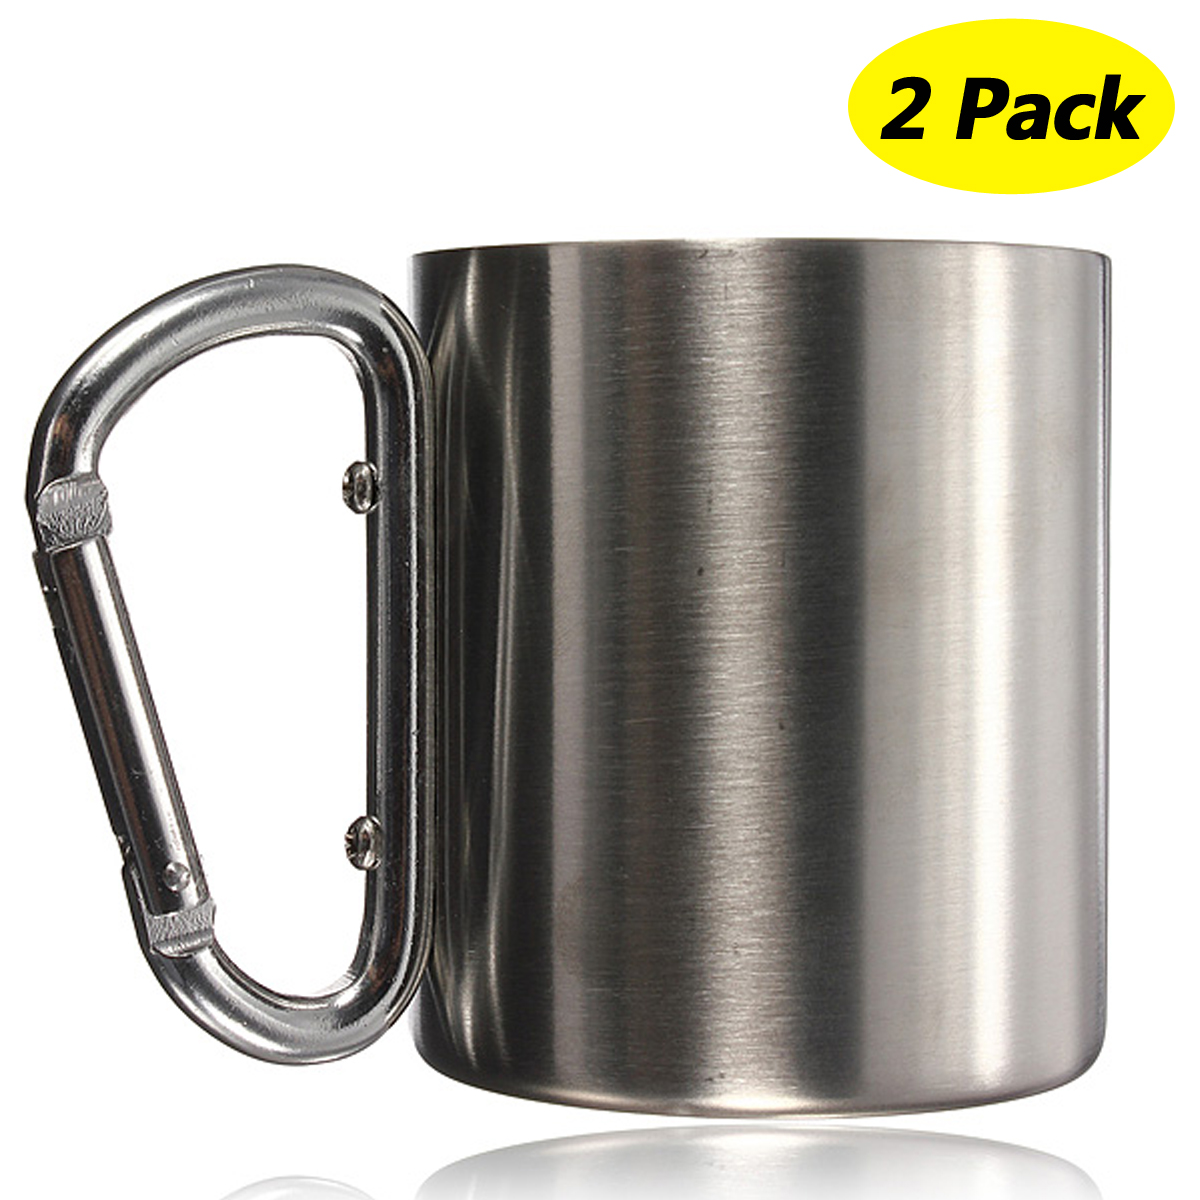 2-Pack 220ML Stainless Steel Coffee Mug Outdoor Camping Cup Carabiner Hook Double Wall For Camping Hiking Outdoor